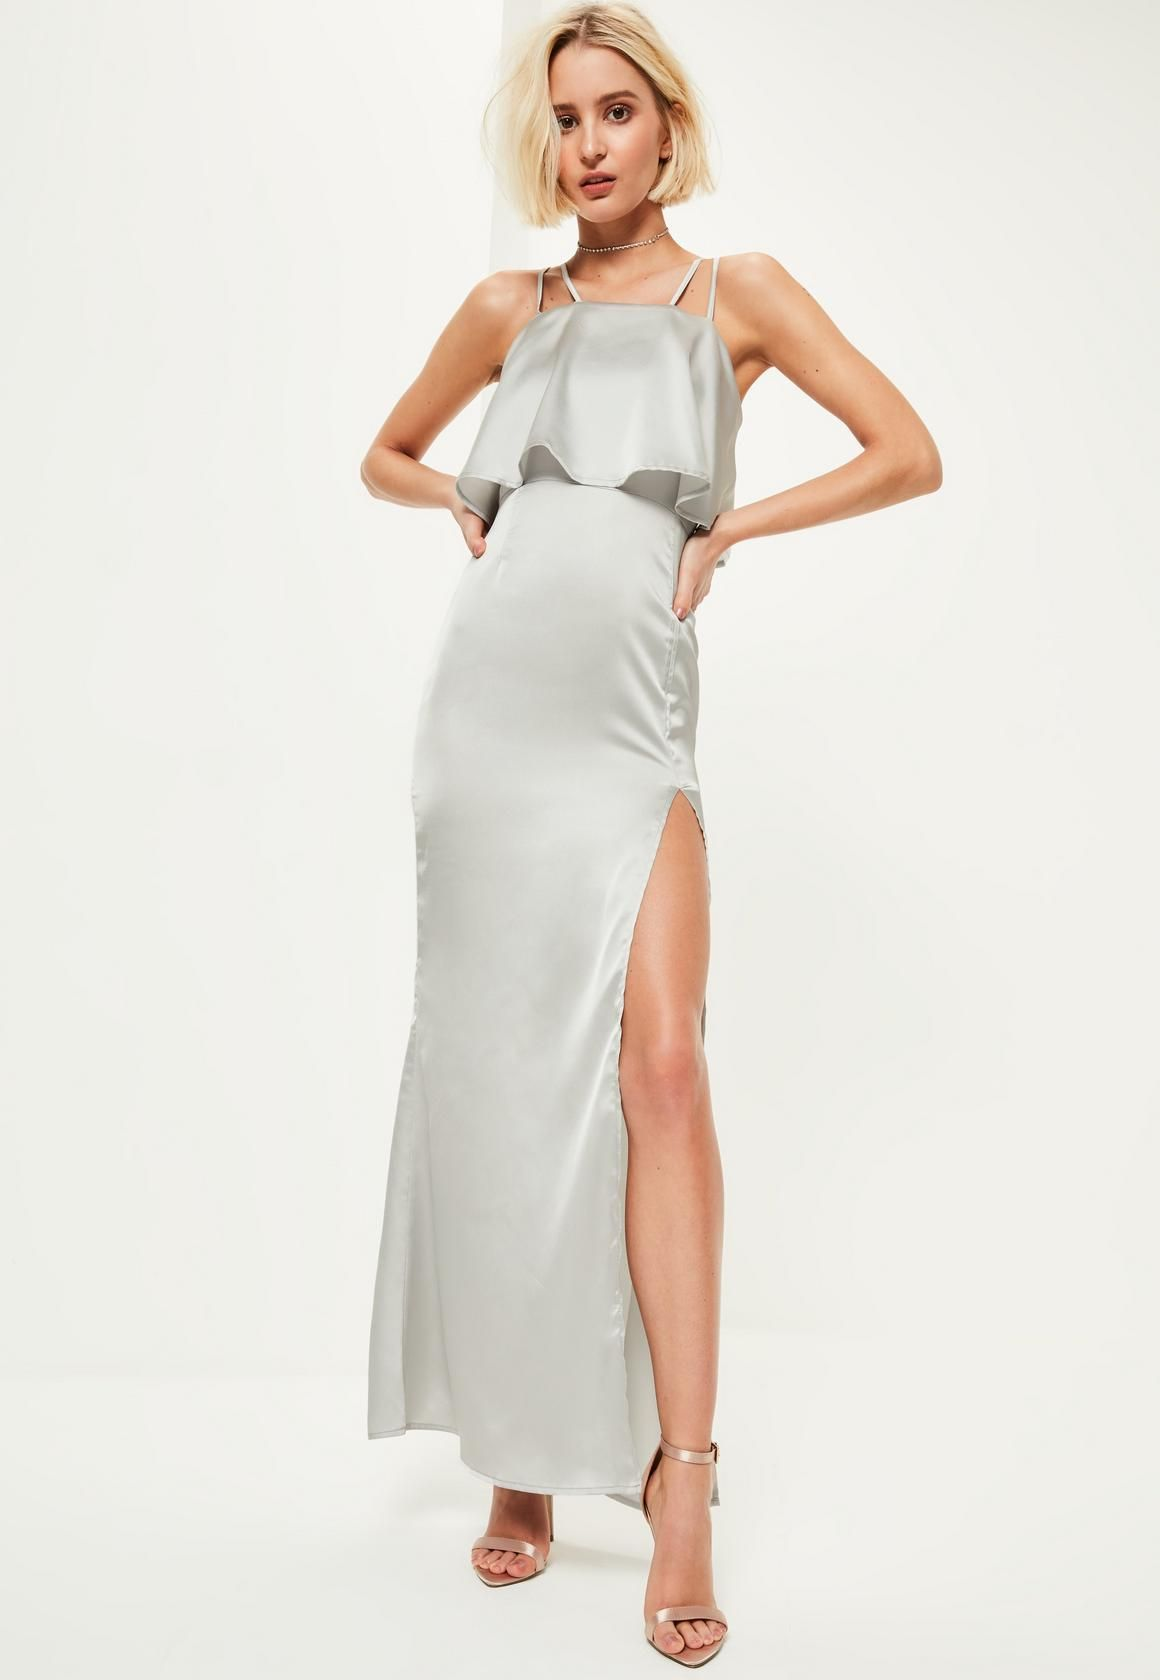 12 best stores for cheap bridesmaid dresses youll actually want 12 best stores for cheap bridesmaid dresses youll actually want to wear again ombrellifo Images